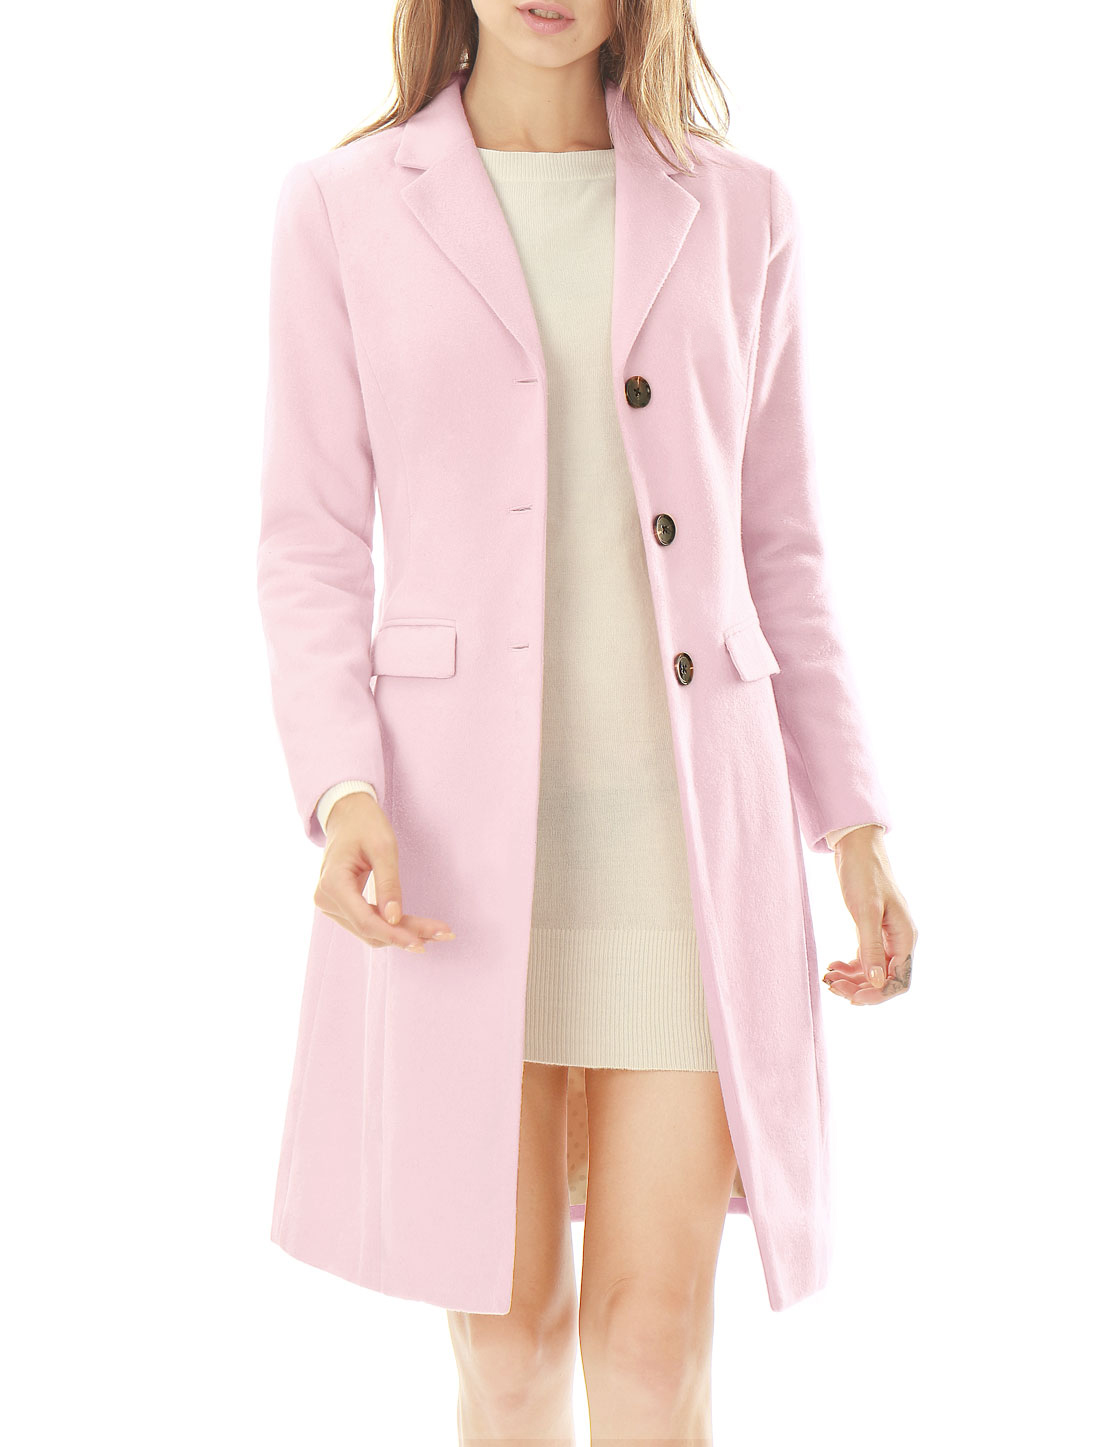 Women Notched Lapel Button Closure Worsted Long Coat Light Pink L